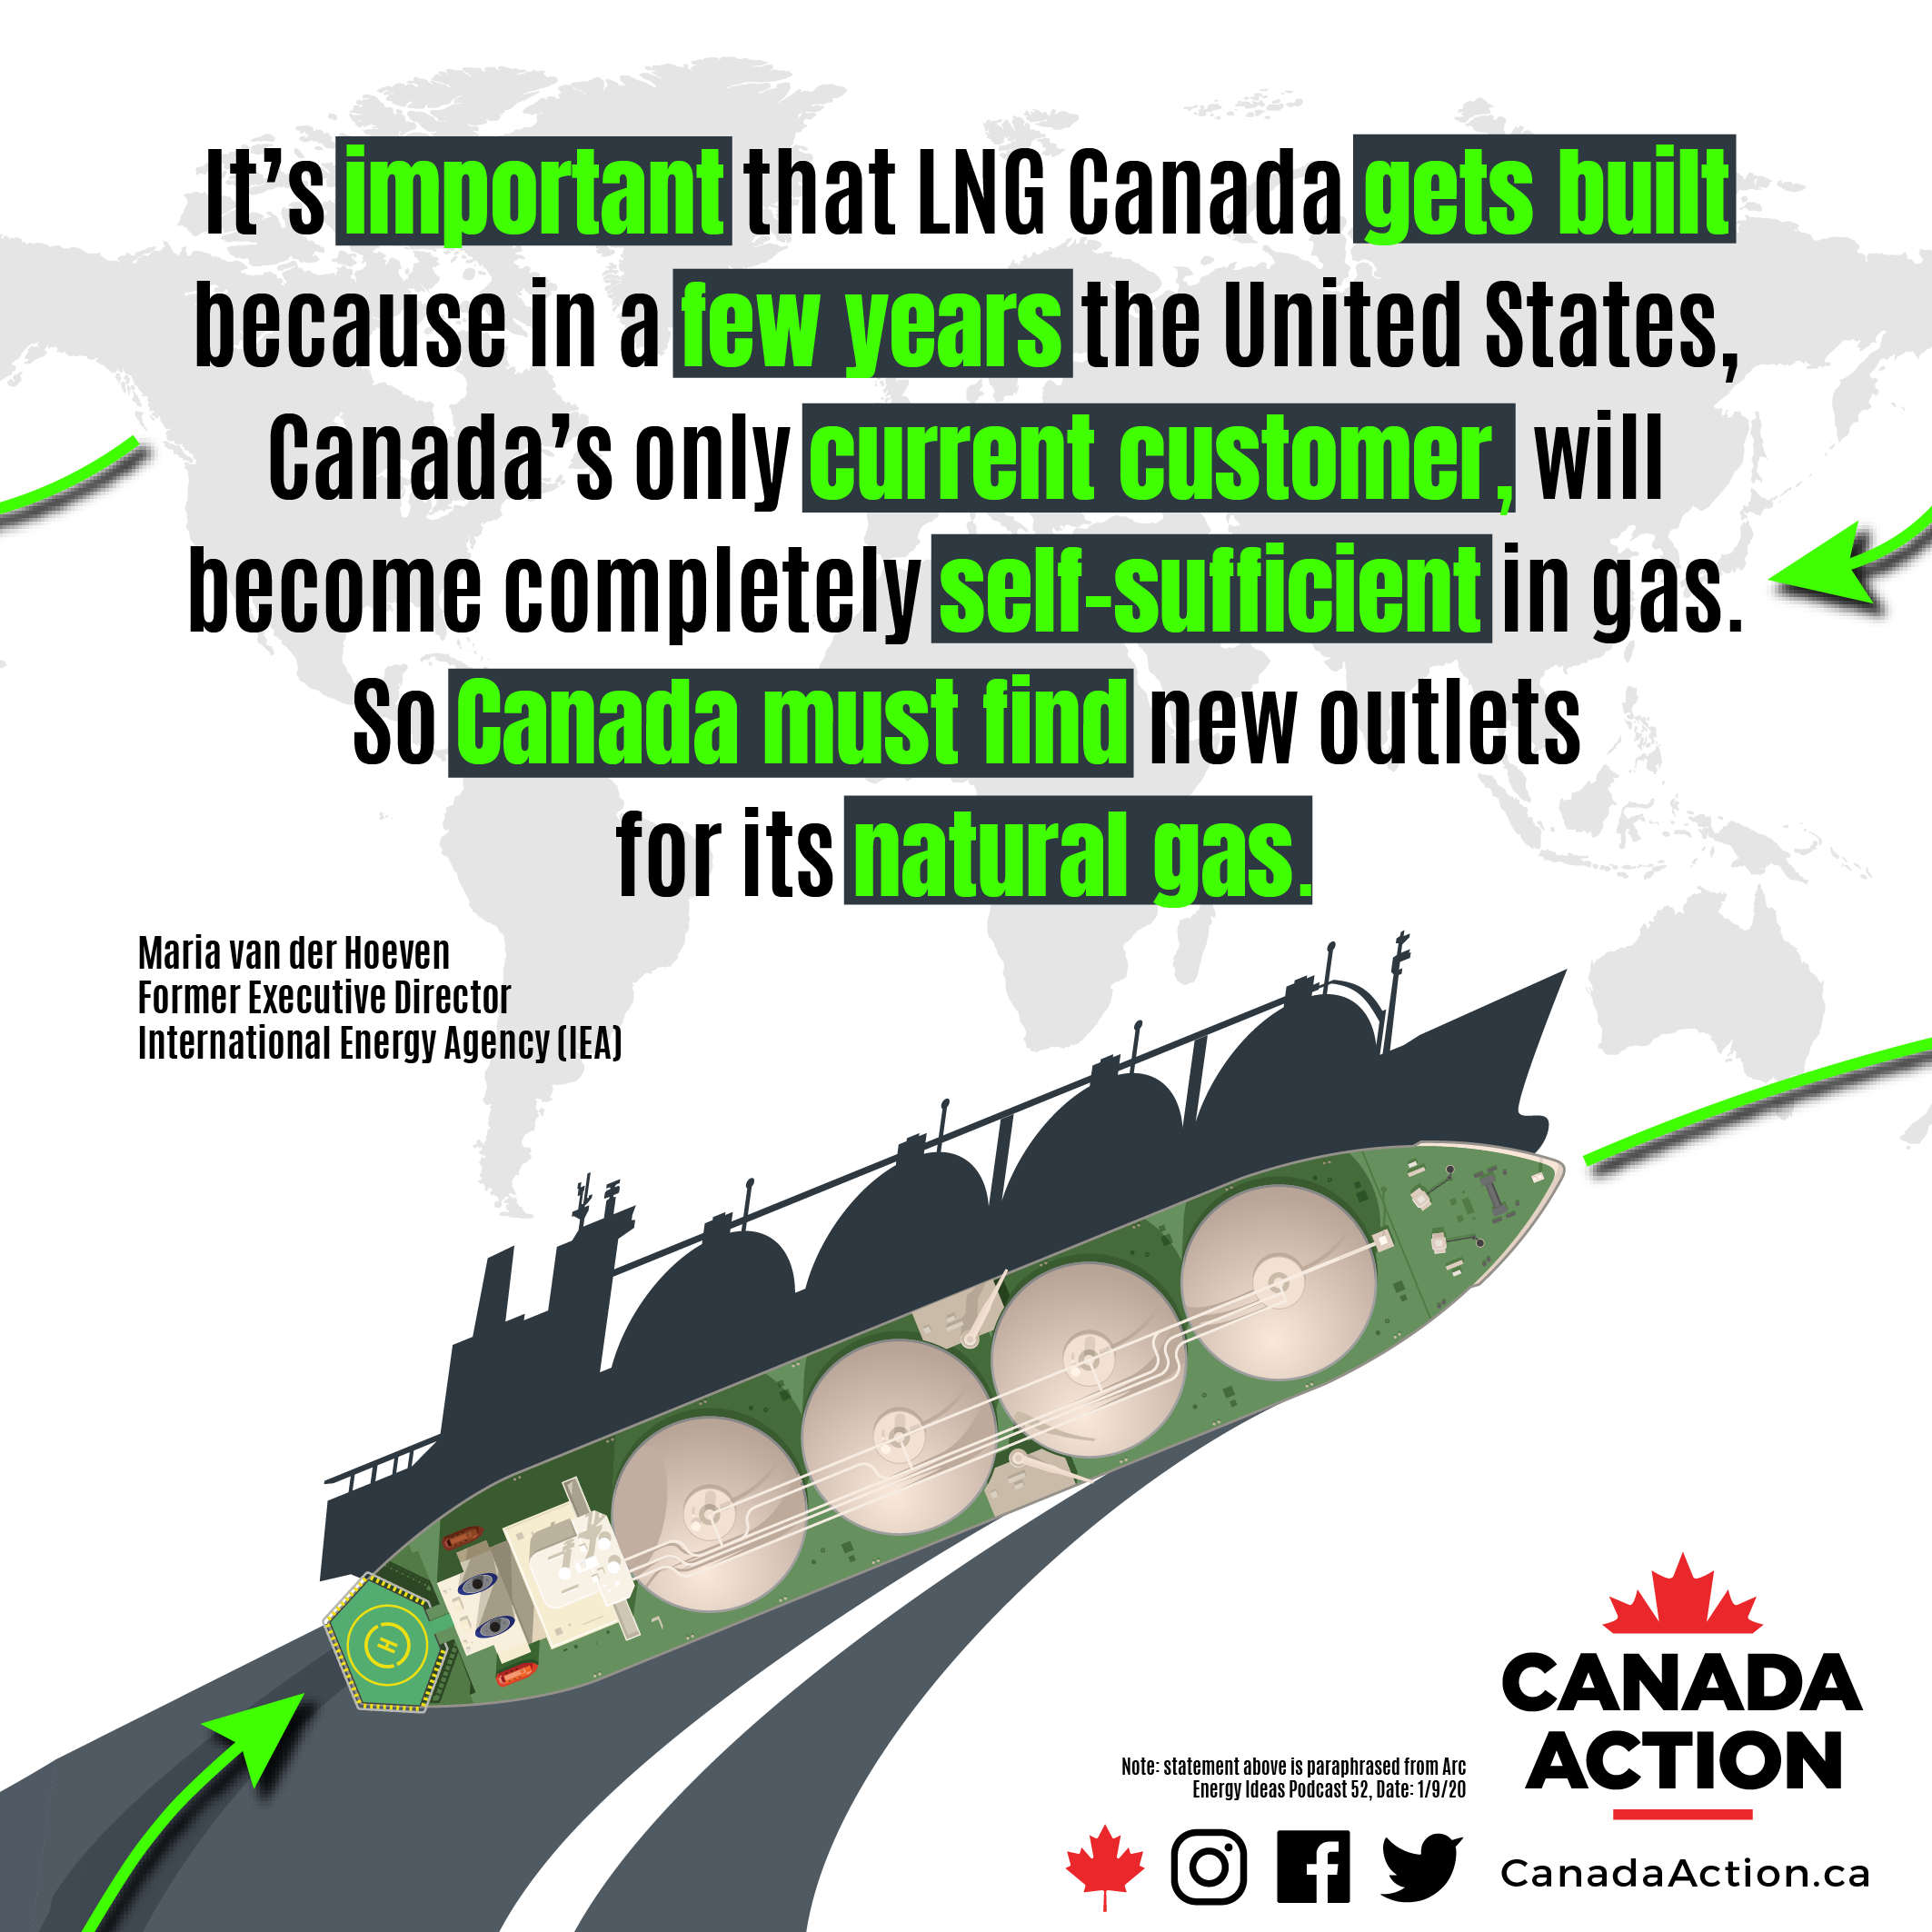 LNG Canada must get built because USA will become self-sufficient in natural gas soon